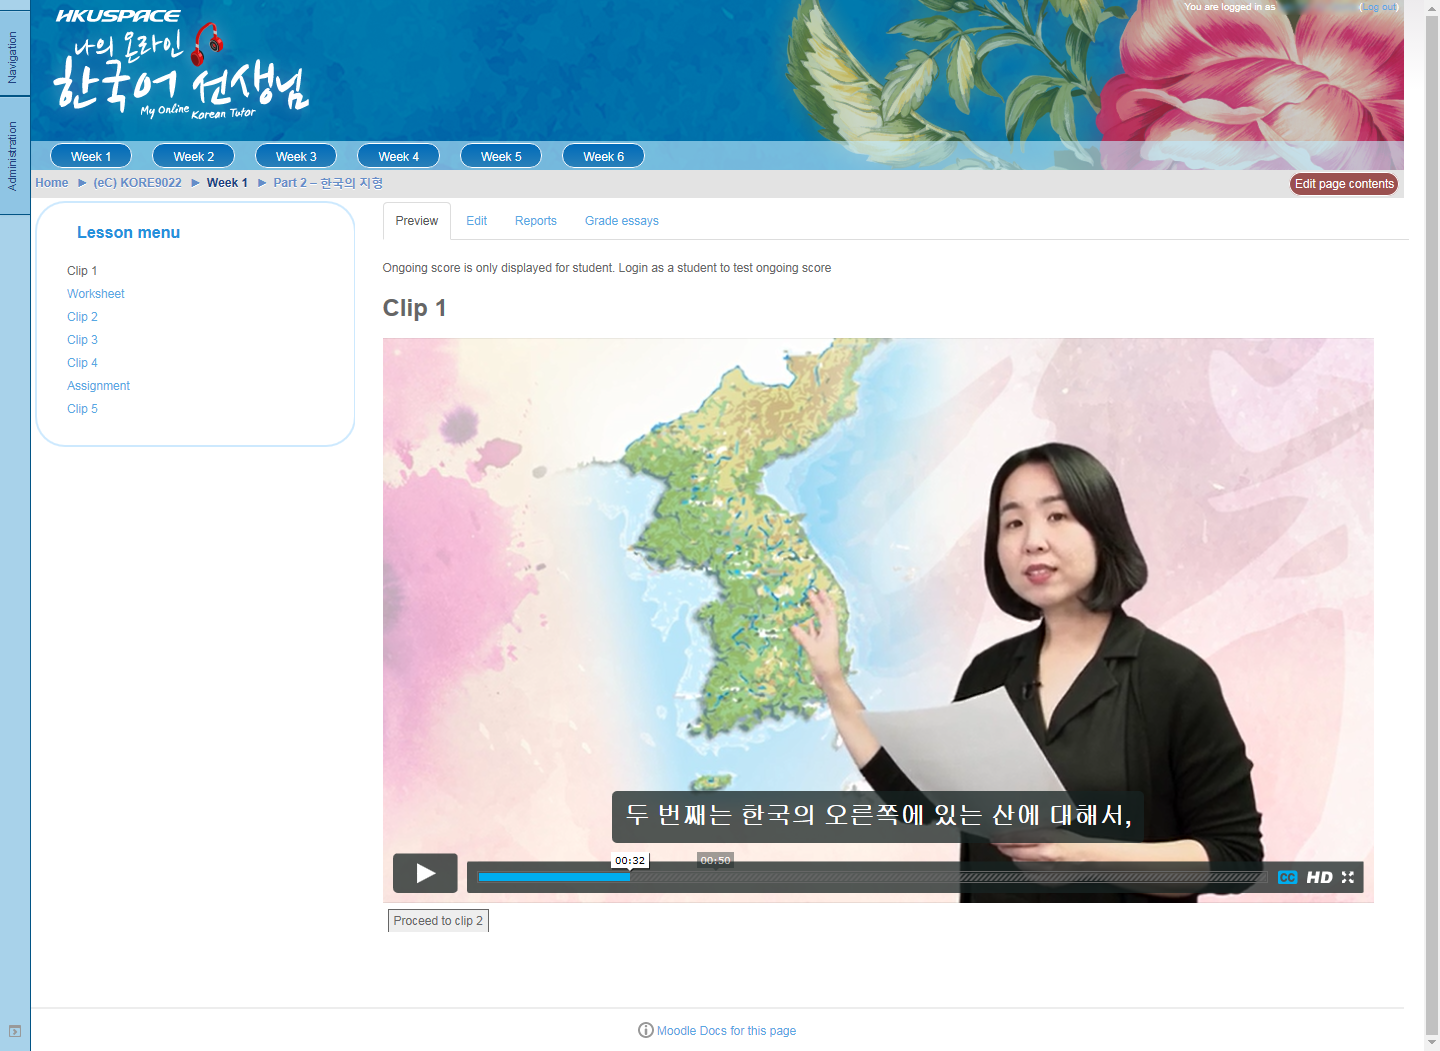 Screen Grab of My Online Korean Tutor